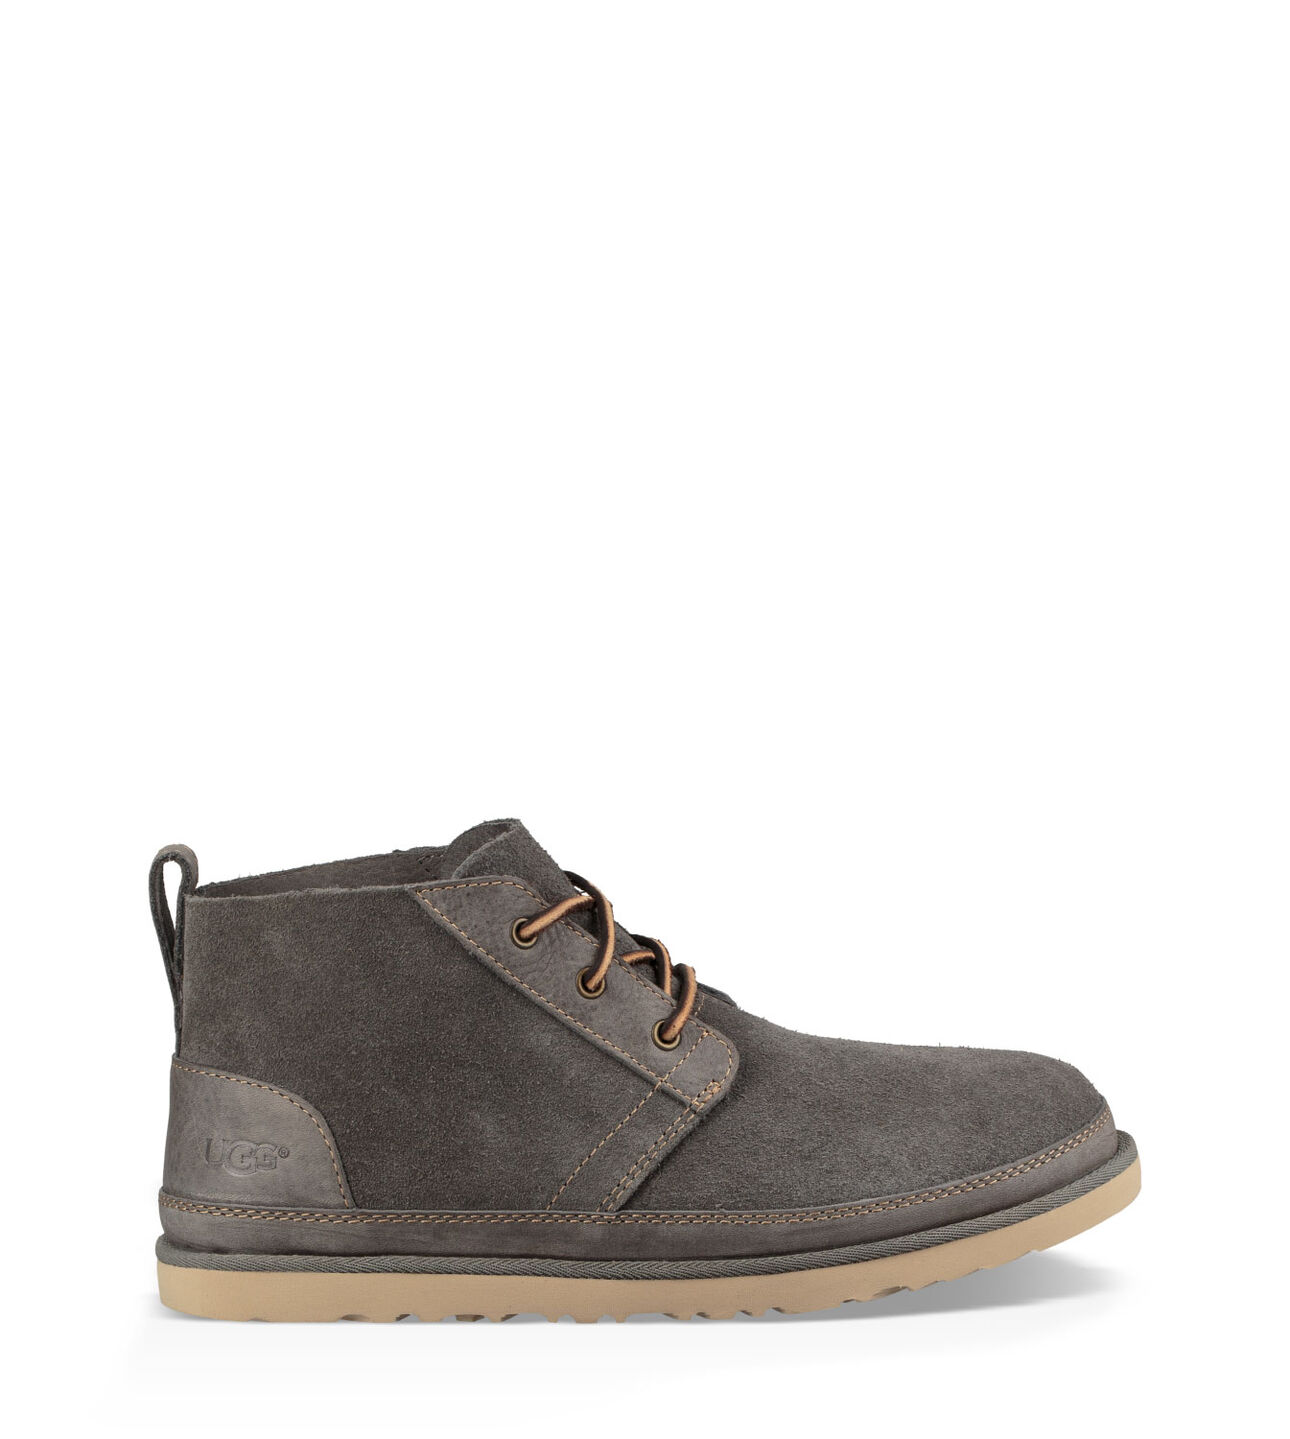 cc3a07ff571 Neumel Unlined Leather Boot